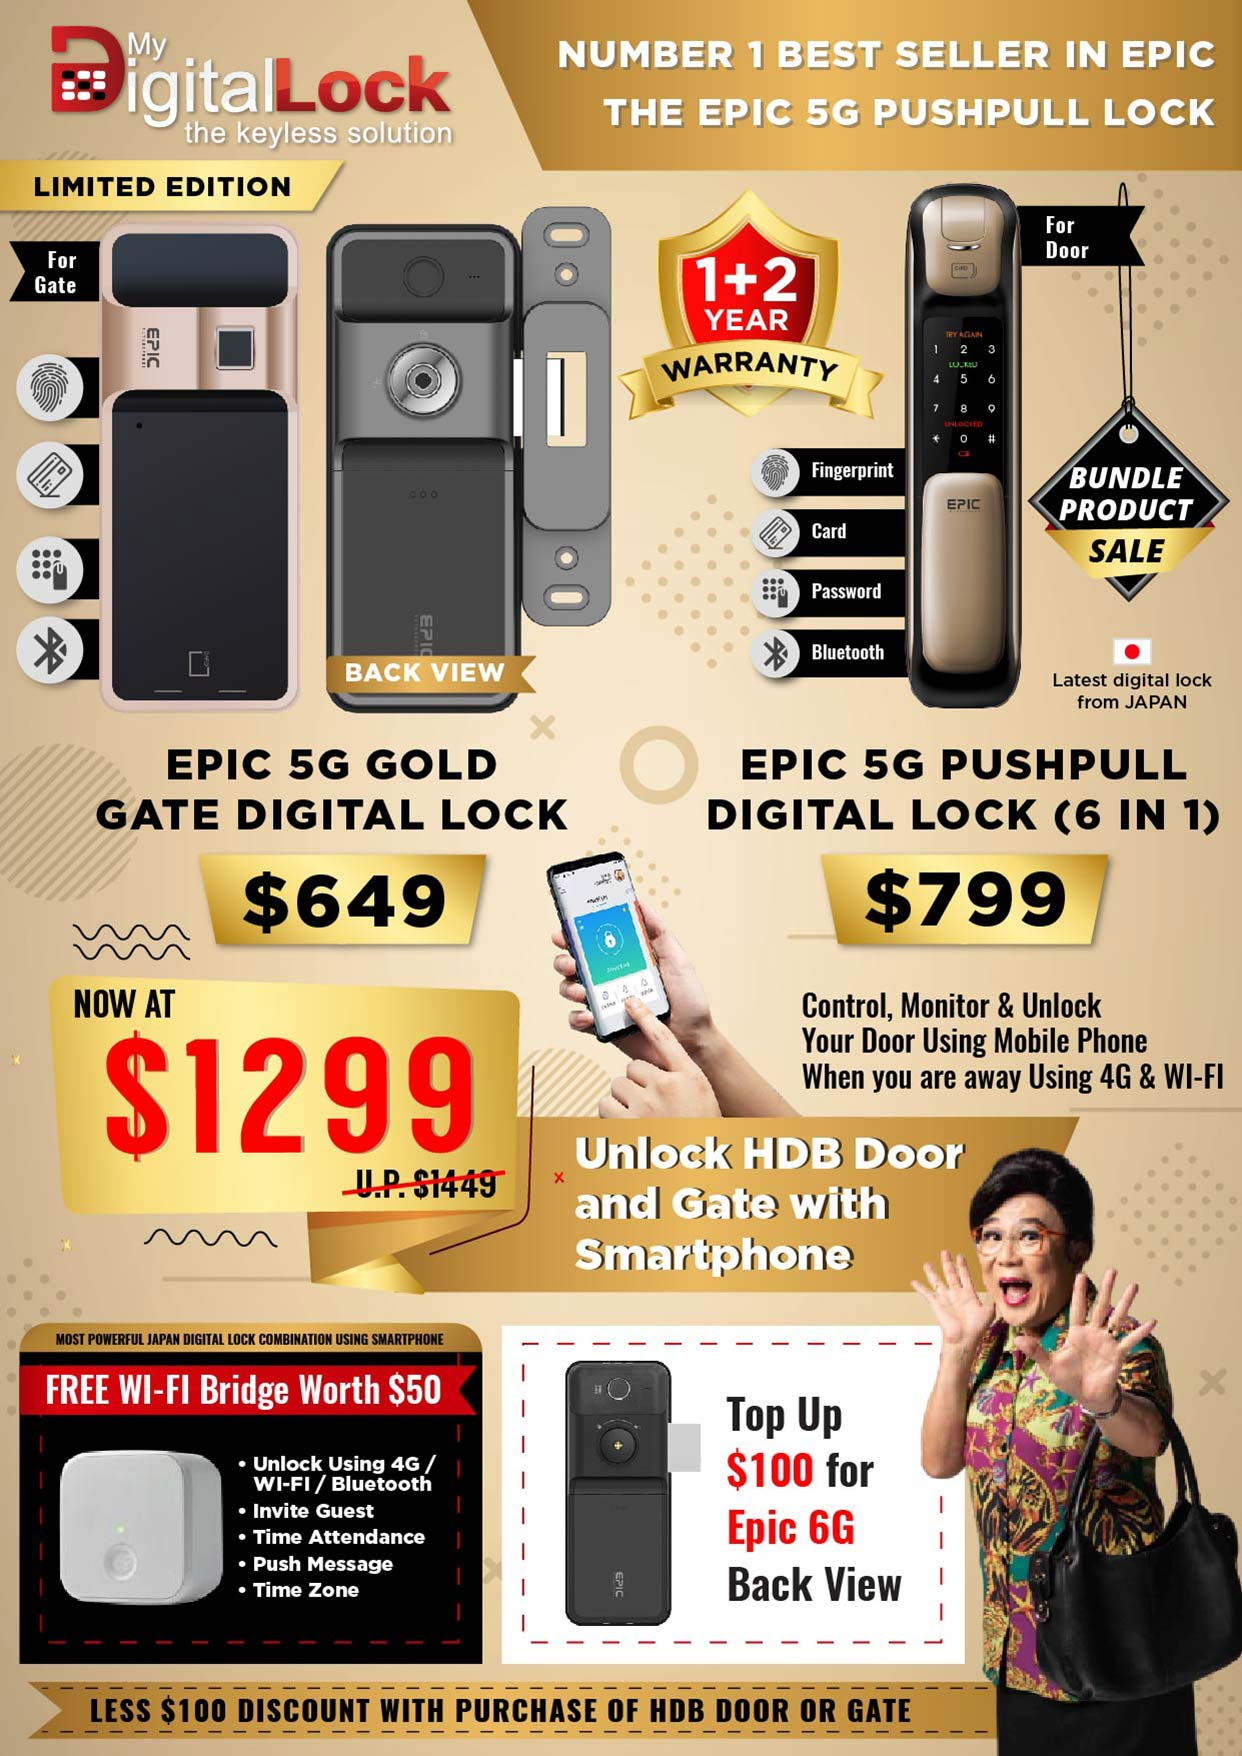 Flyer Design for Digital Lock Products